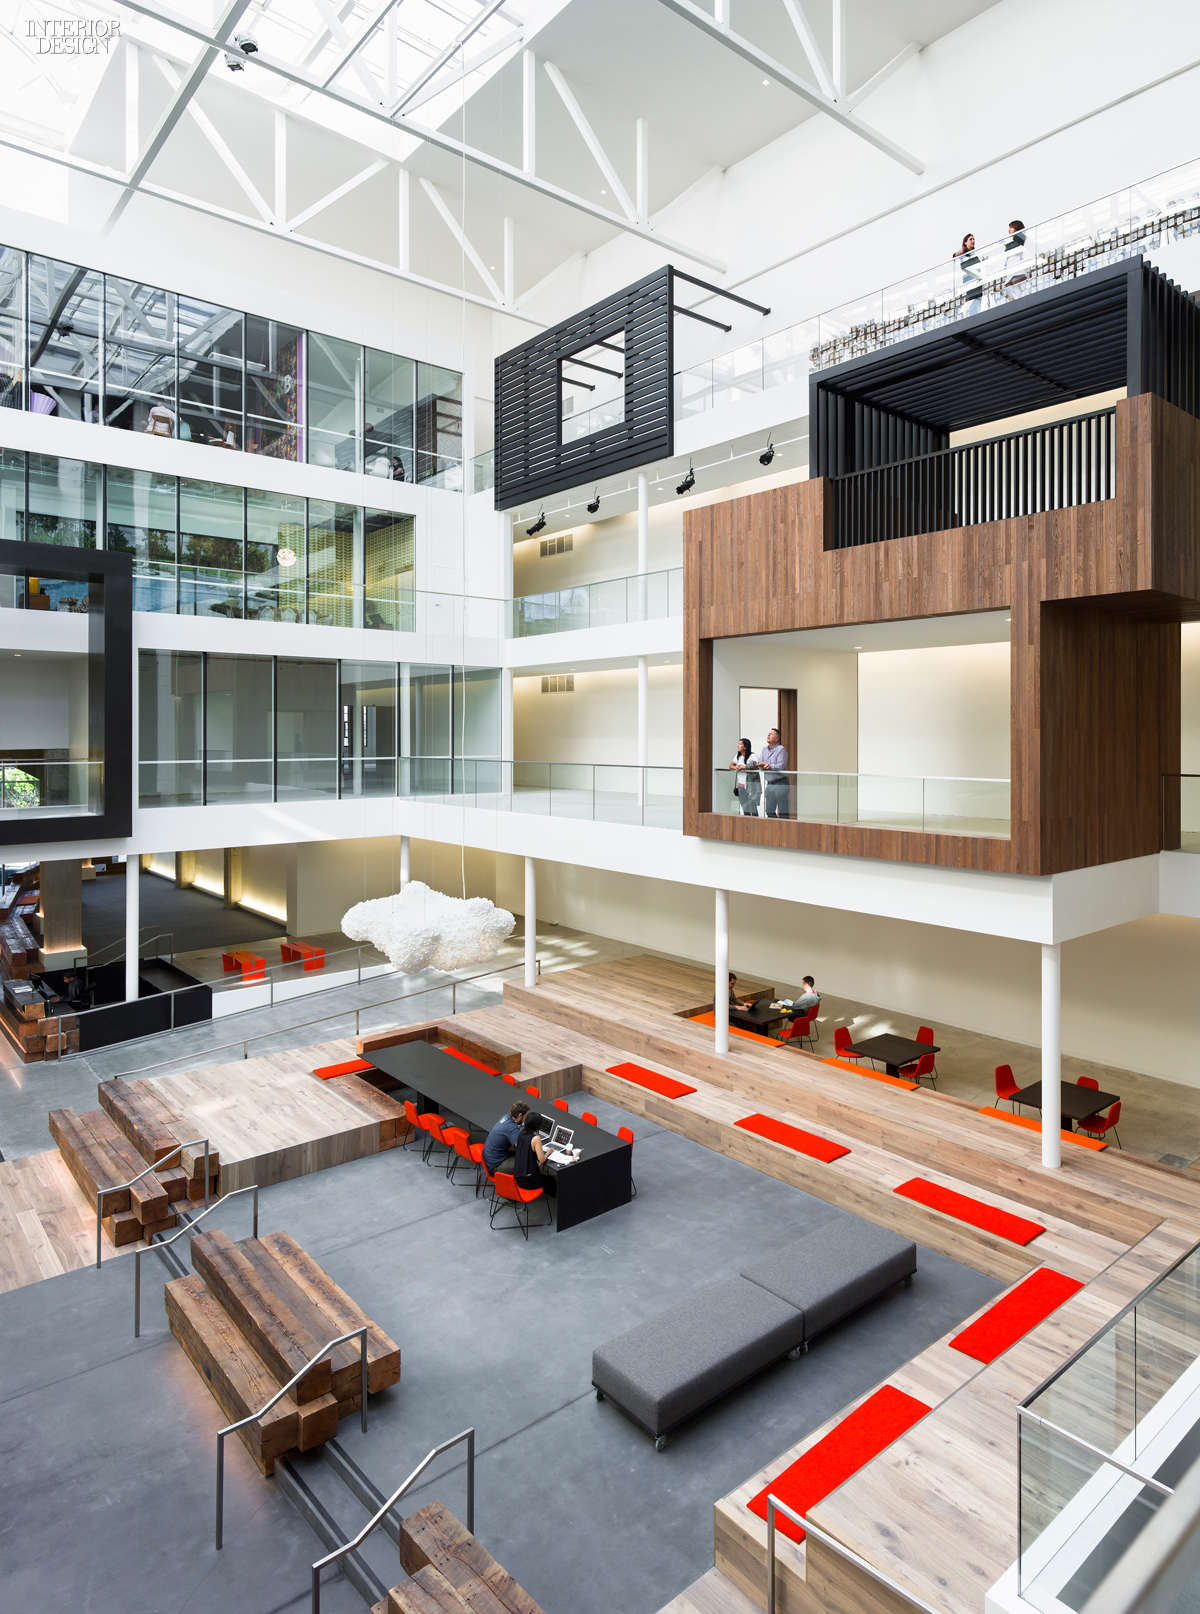 2015 top 100 giants rankings - Architectural Design Interior